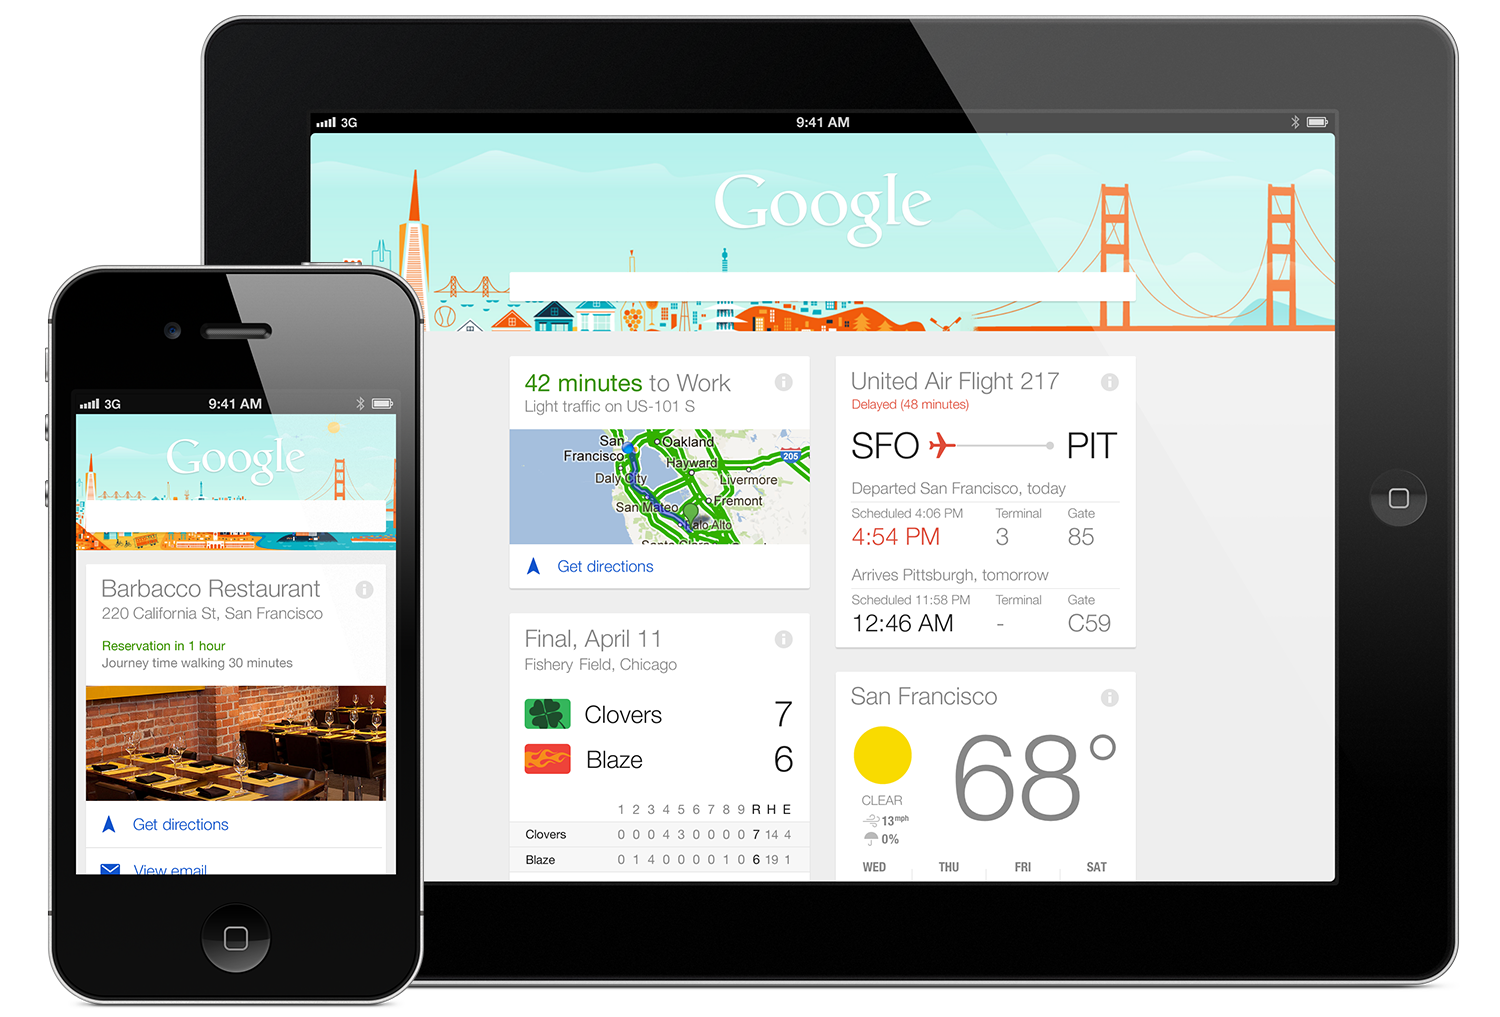 Google Now Predictive Personal Assistant mobile UX design trend